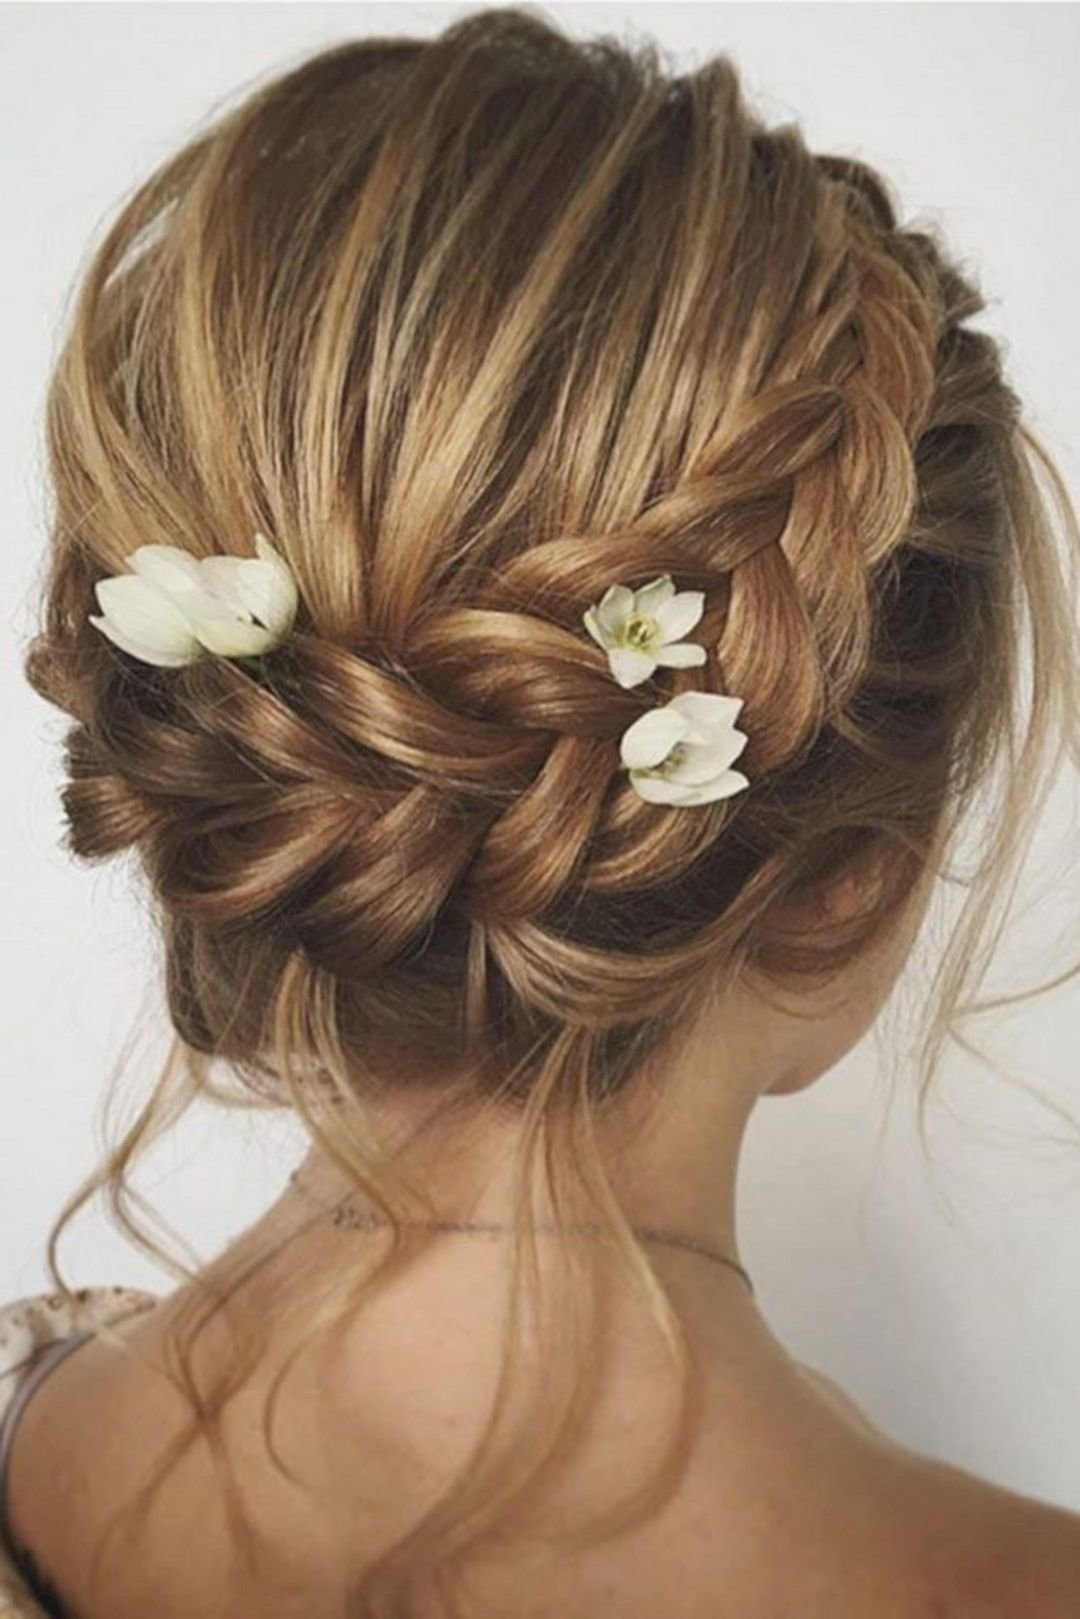 The Best Wedding Bridesmaid Hairstyles For Short Hairs – Oosile Pictures